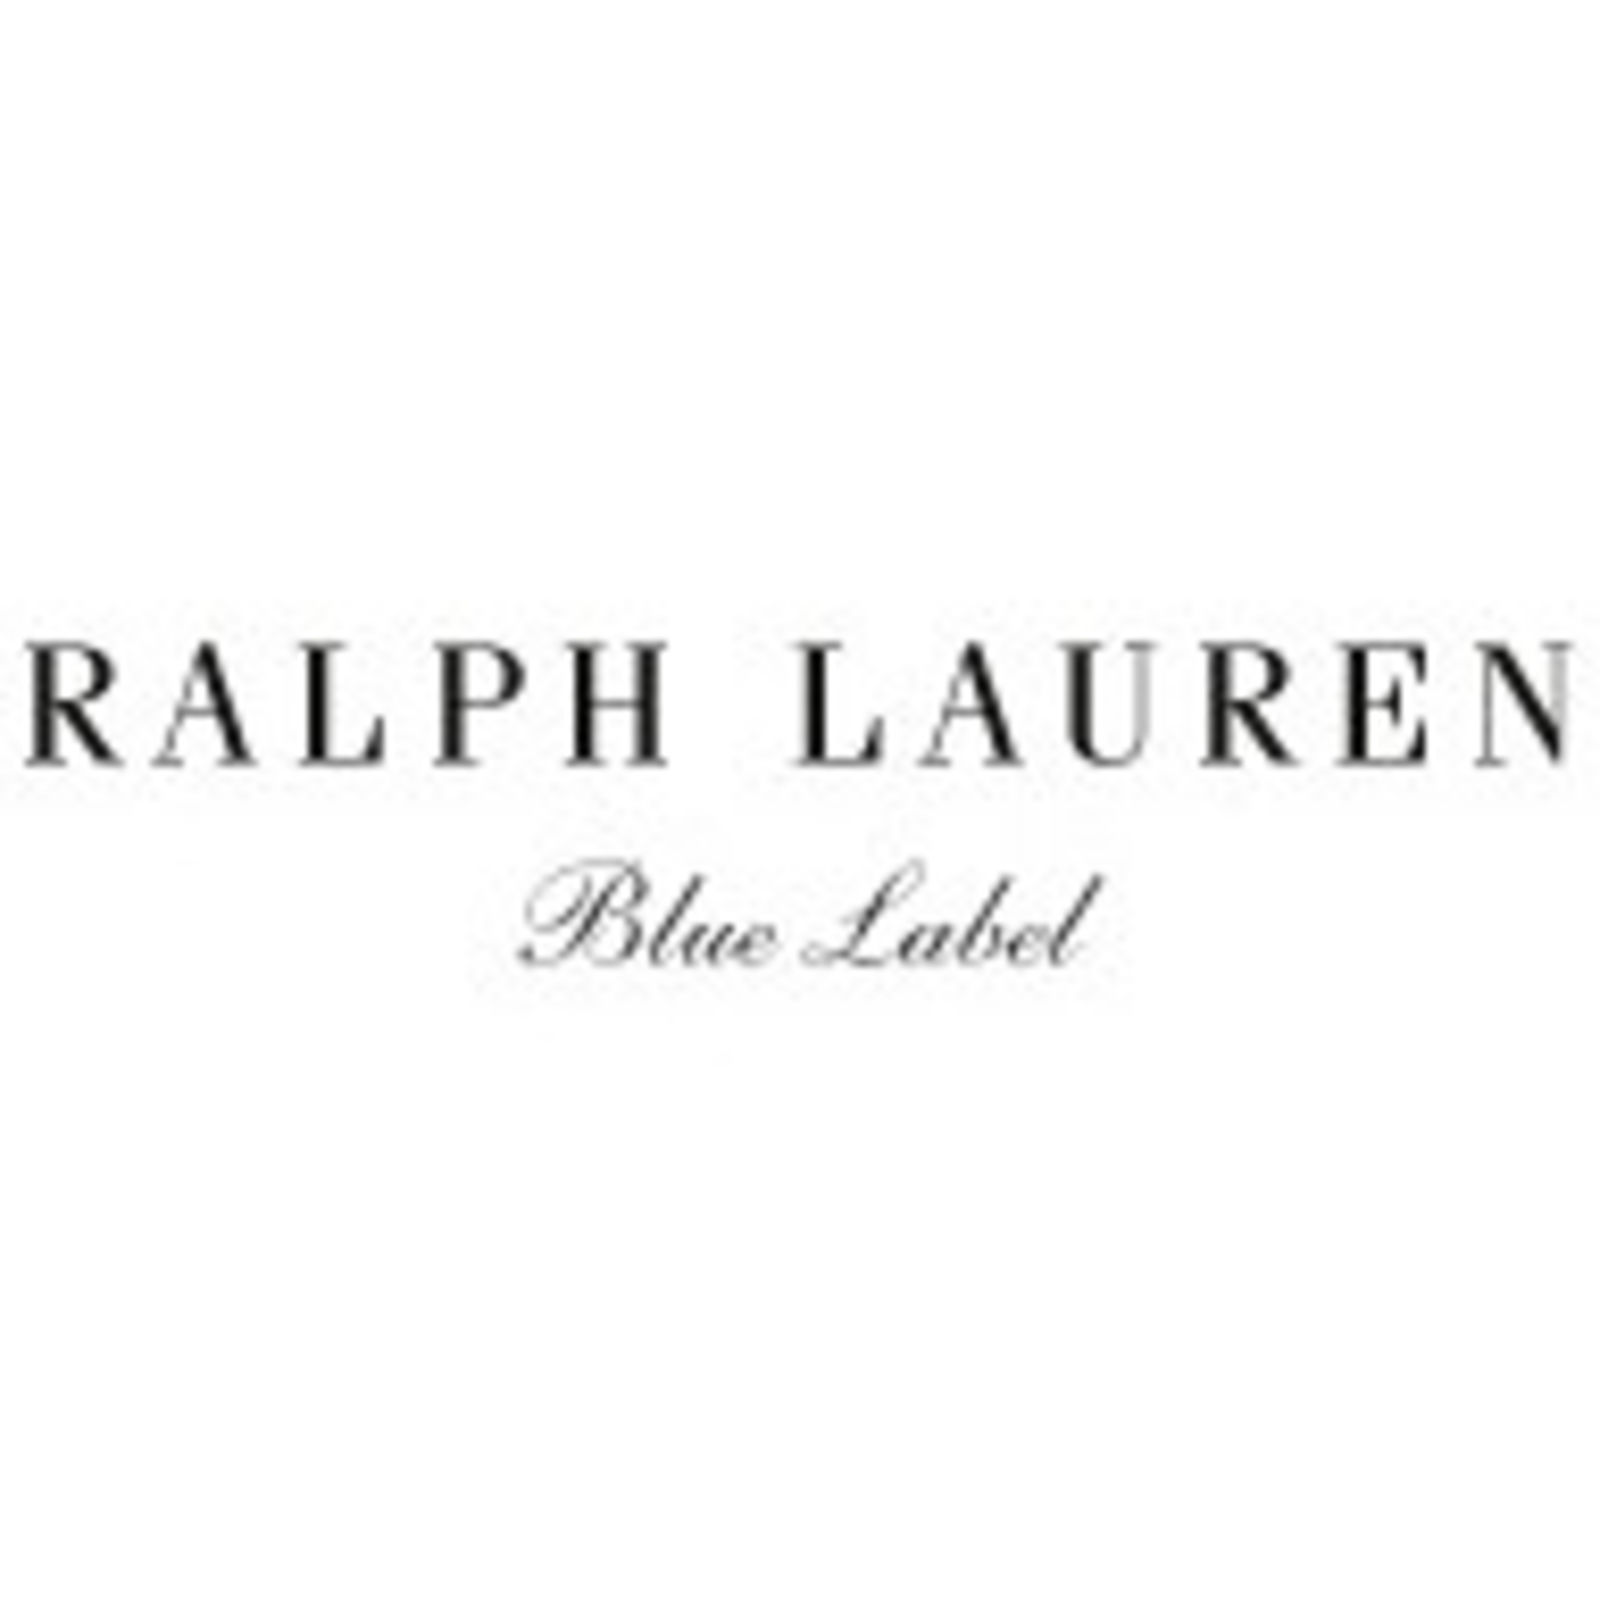 RALPH LAUREN BLUE LABEL (Изображение 1)